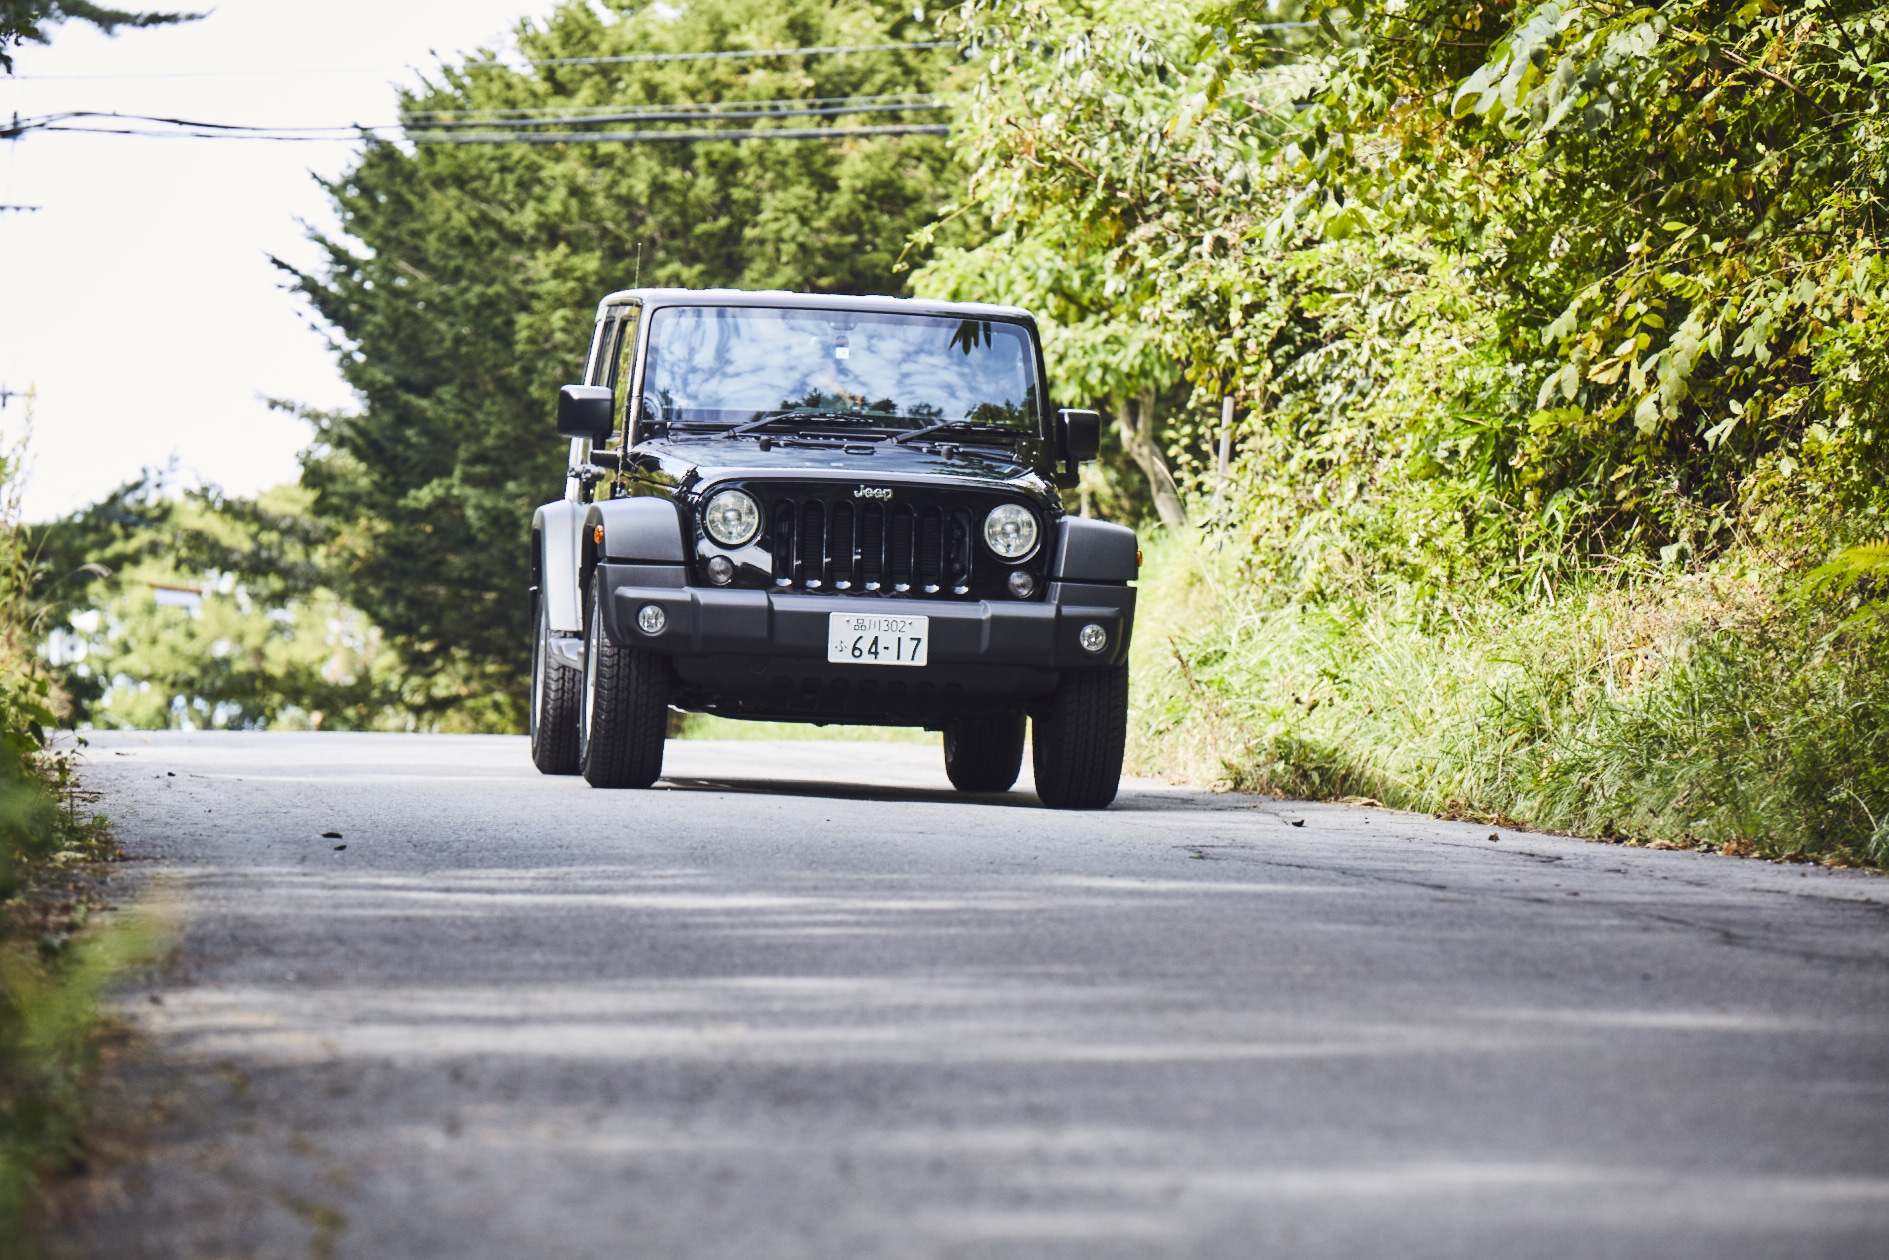 ho_104442 My Jeep®,My Life. ボクとJeep®の暮らしかた。女優・太田莉菜